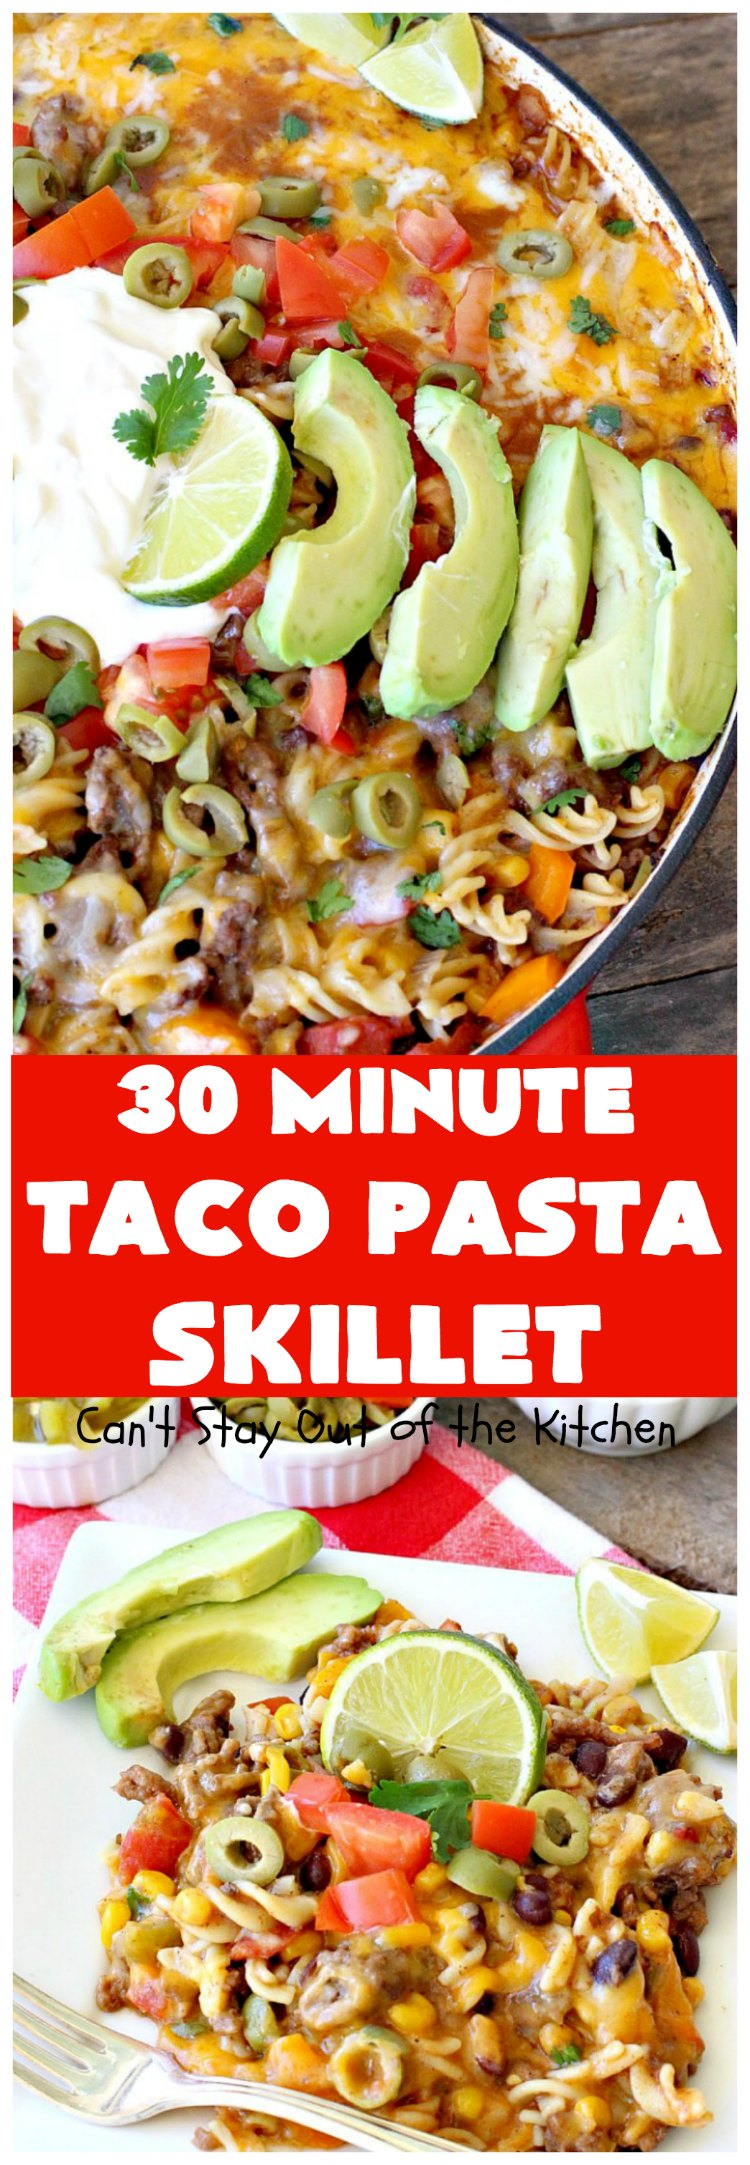 30-Minute Taco Pasta Skillet | Can't Stay Out of the Kitchen | This delicious #TexMex #beef entree includes #glutenfree #pasta, #beans & corn and can be made in about 30 minutes. The toppings make this dish fabulous. It's great for weeknight dinners! #avocados